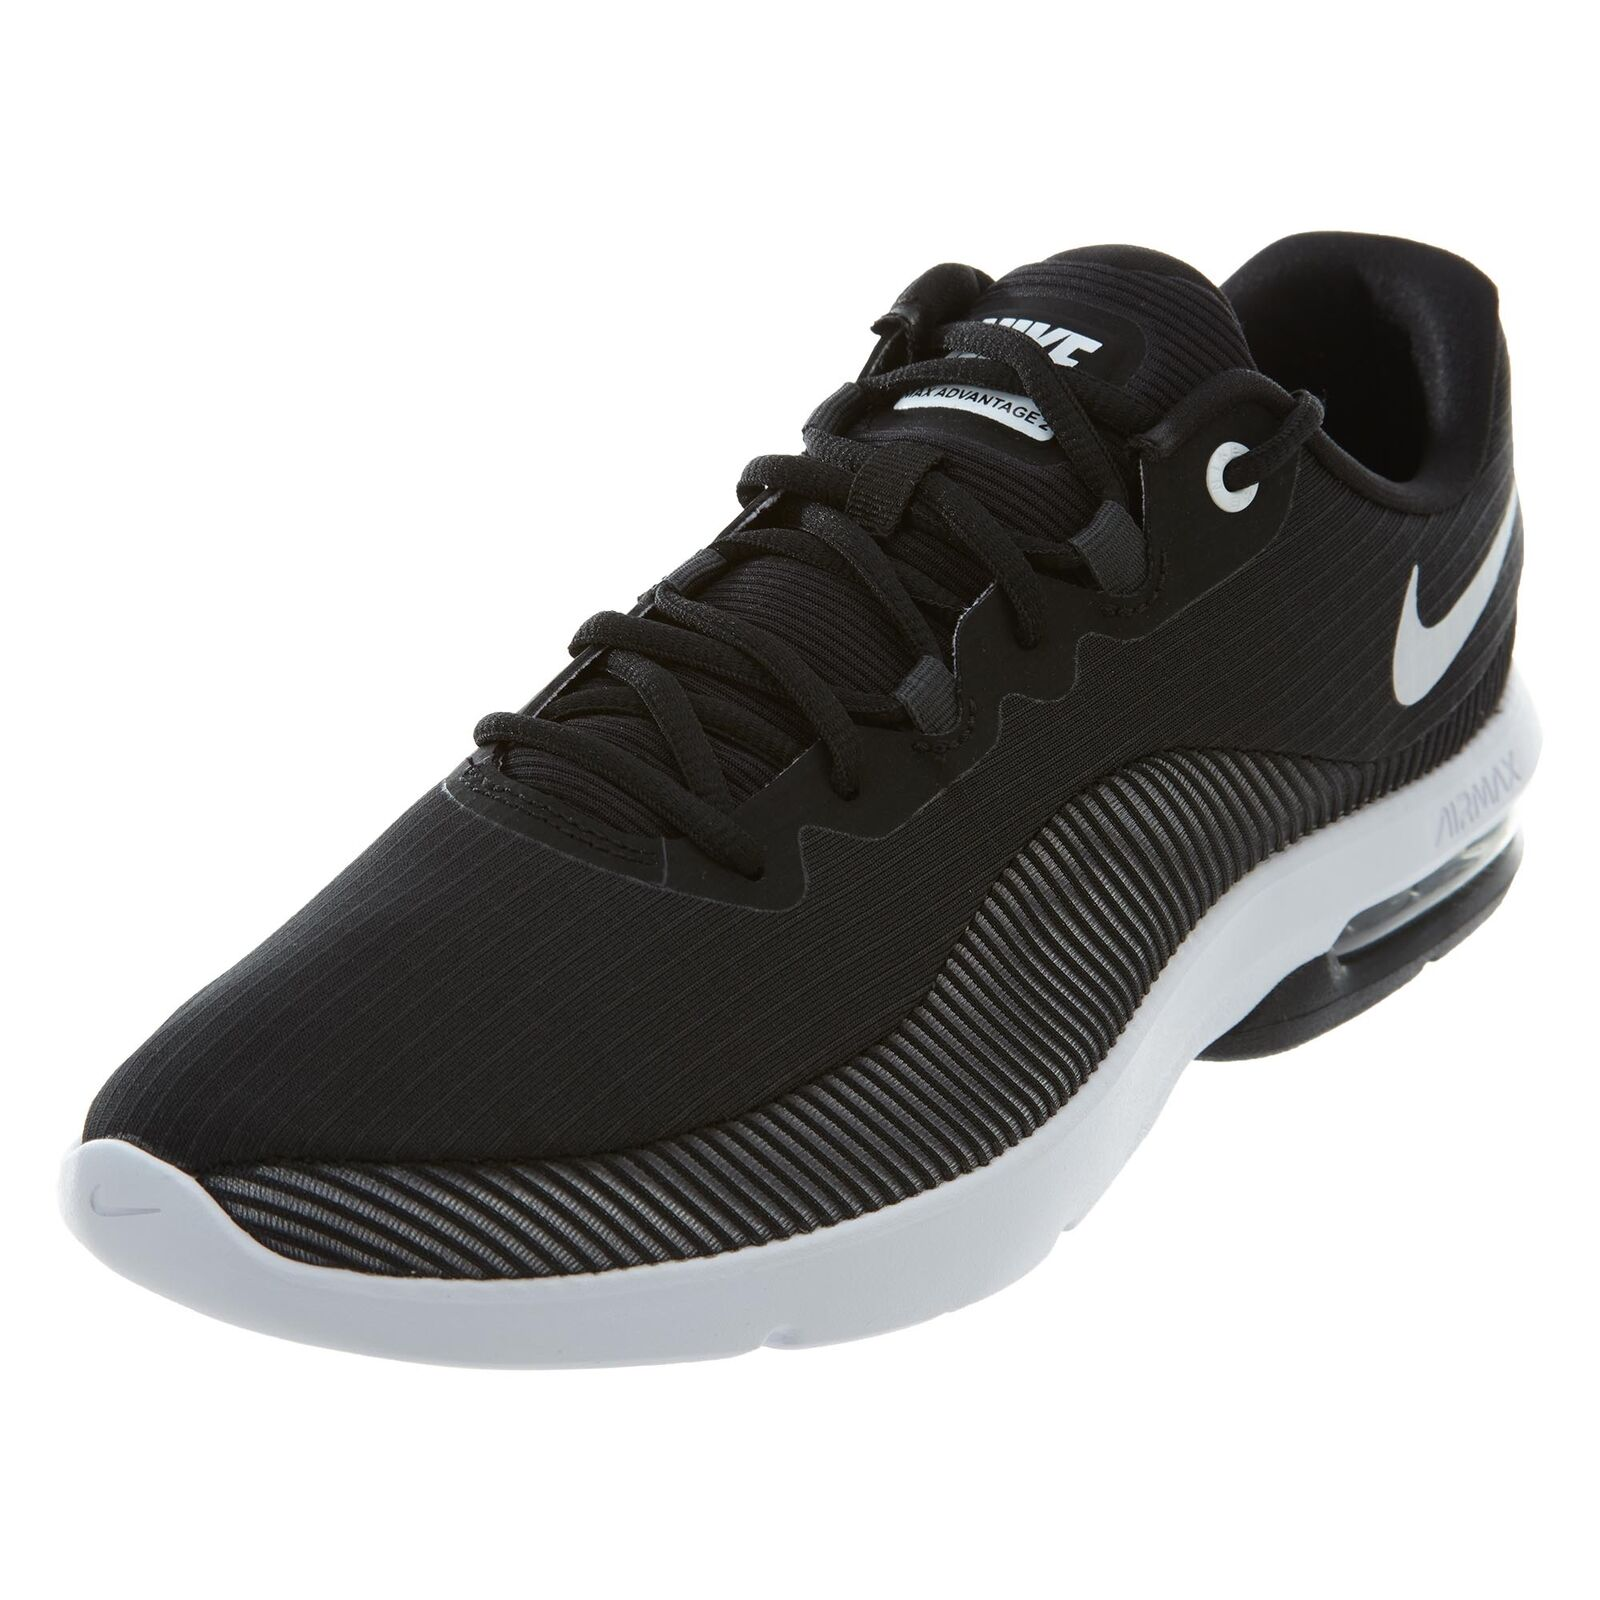 Nike Mens Air Max Advantage 2 Running shoes AA7396-001